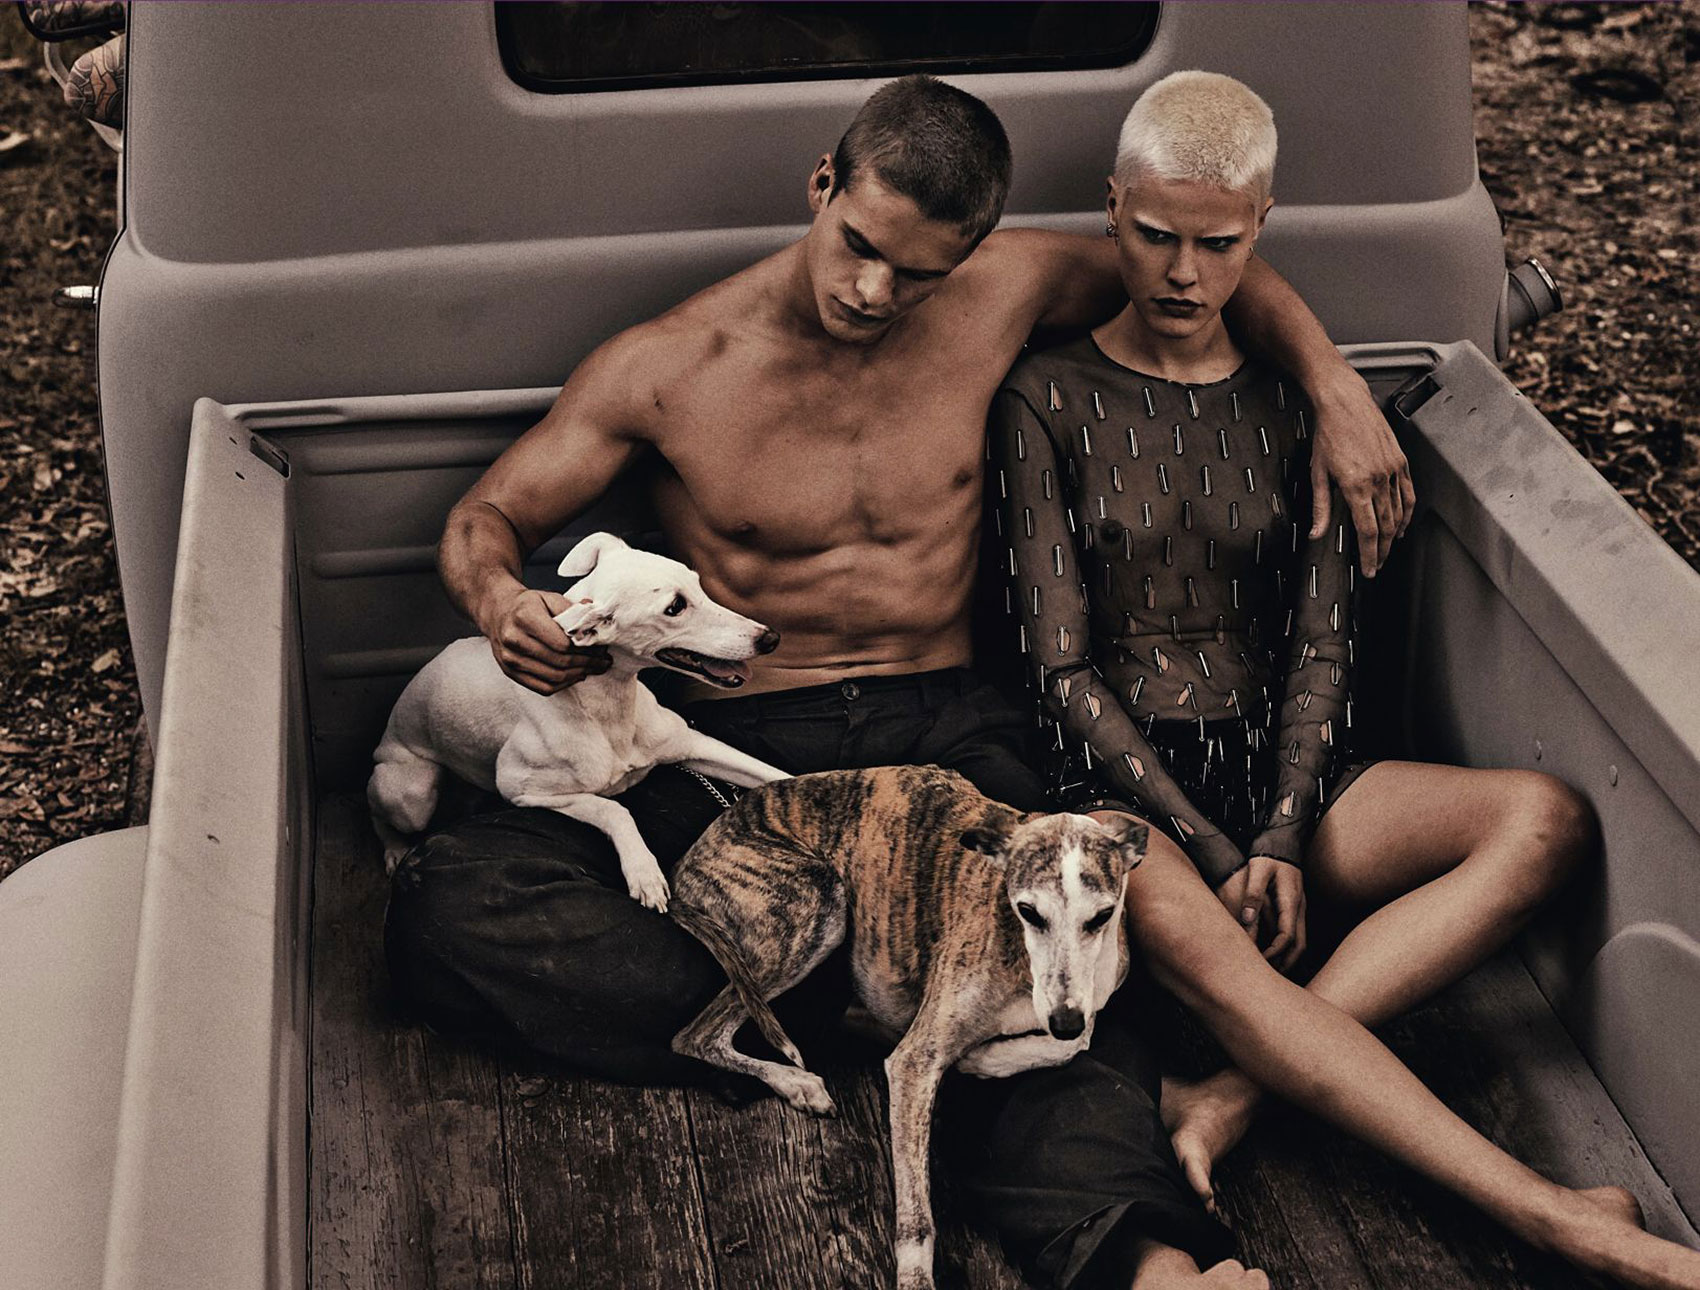 kris-gottschalk-by-phil-poynter-for-vogue-germany-may-2016-3